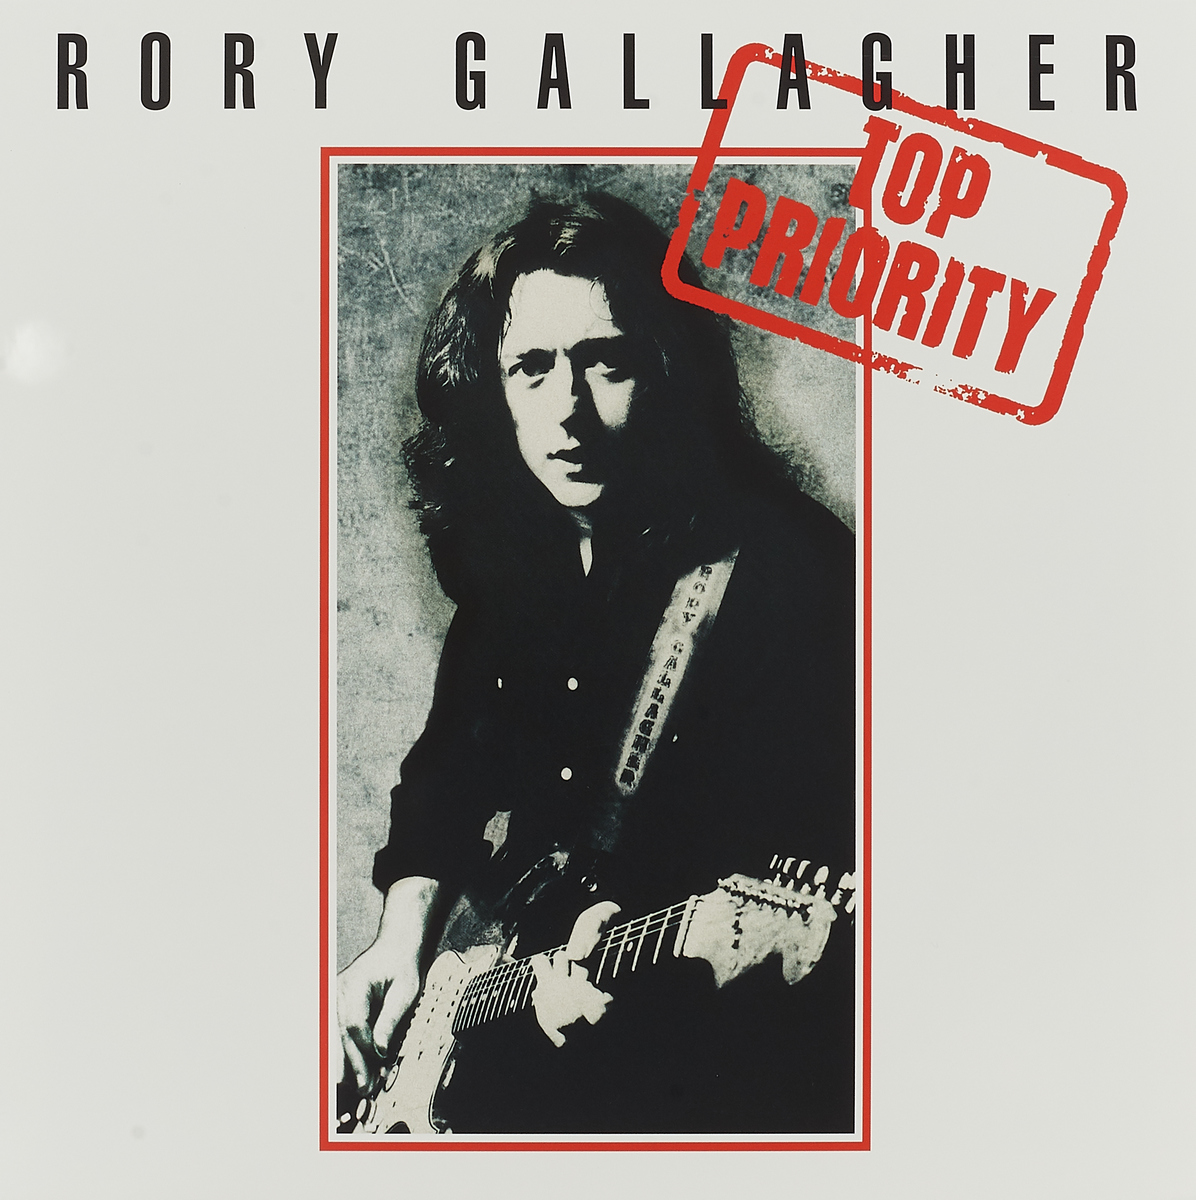 Рори Галлахер Rory Gallagher. Top Priority (LP) рори галлахер gallagher rory live in europe hq lp